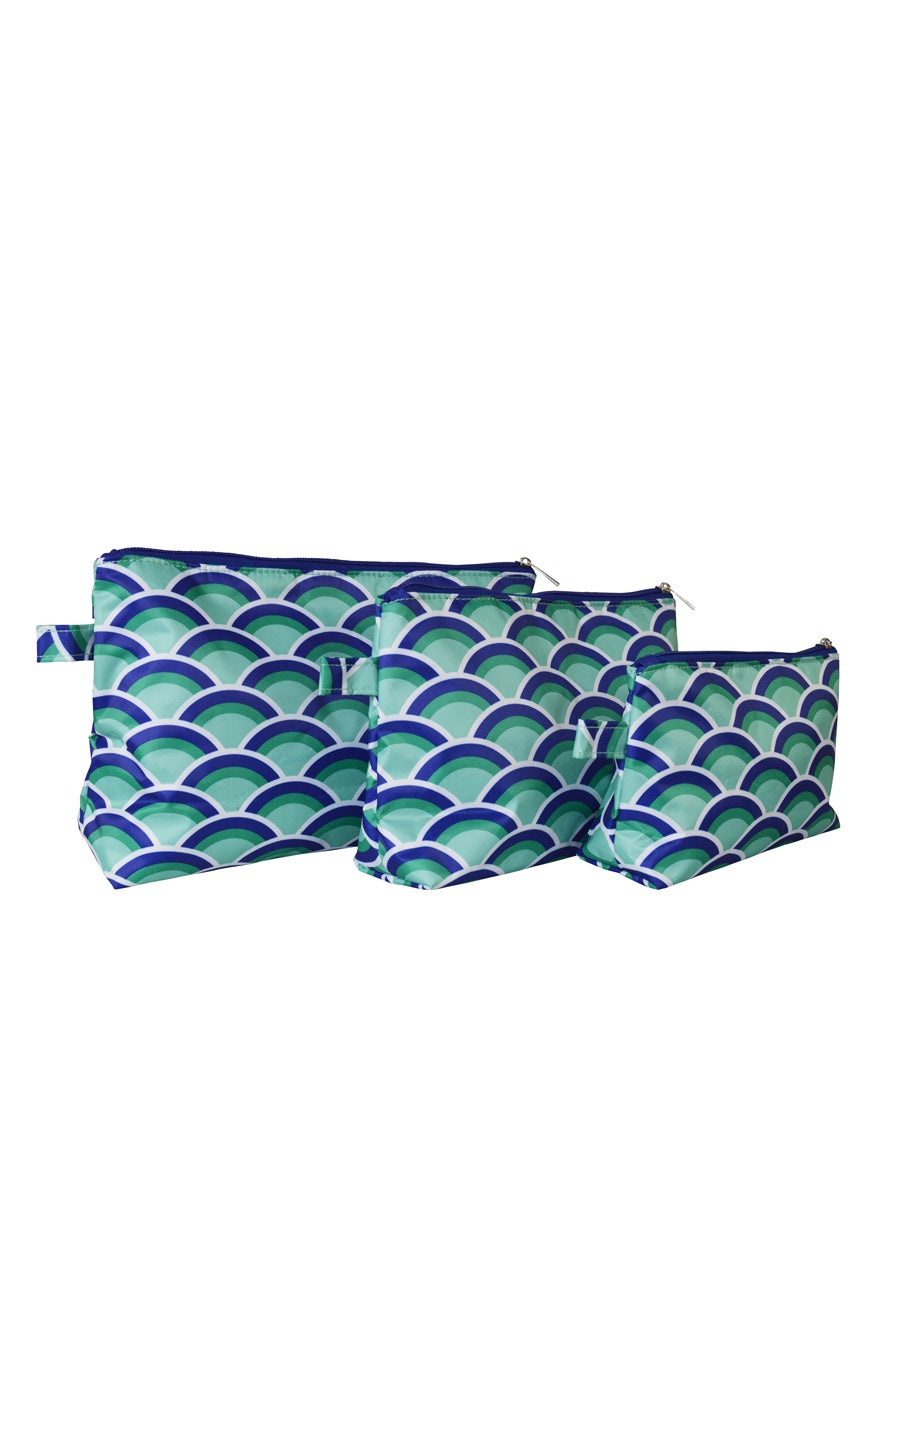 Mermazing 3 Piece Cosmetic Bag Set